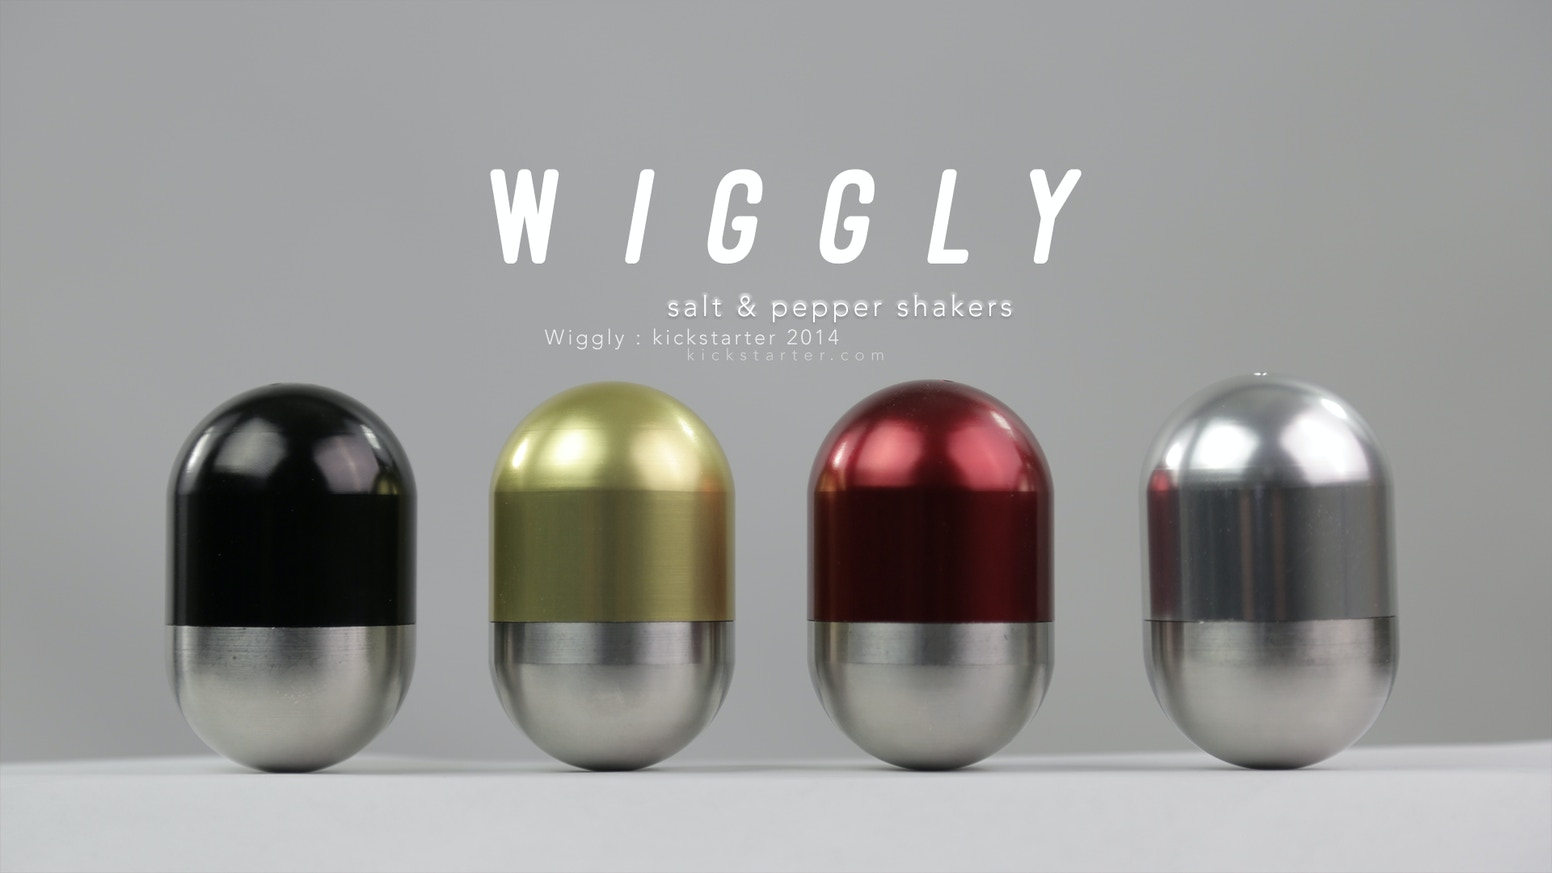 Wiggly Salt and Pepper Shakers